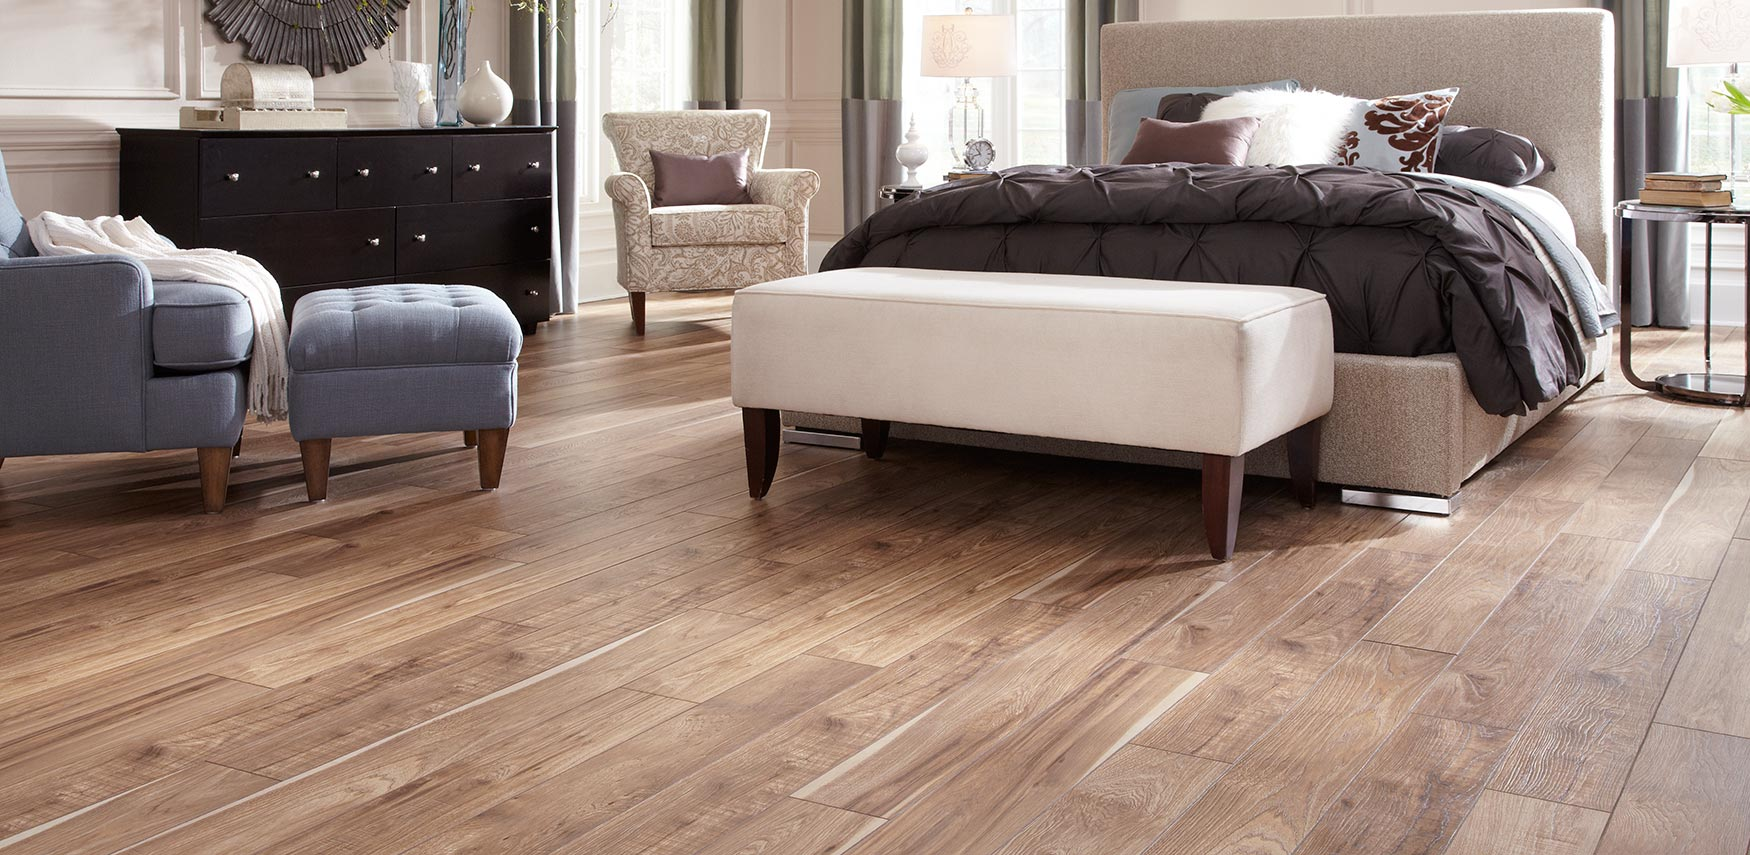 Laminate Wood Floors. Best Laminate Flooring Pros U0026 Cons ...